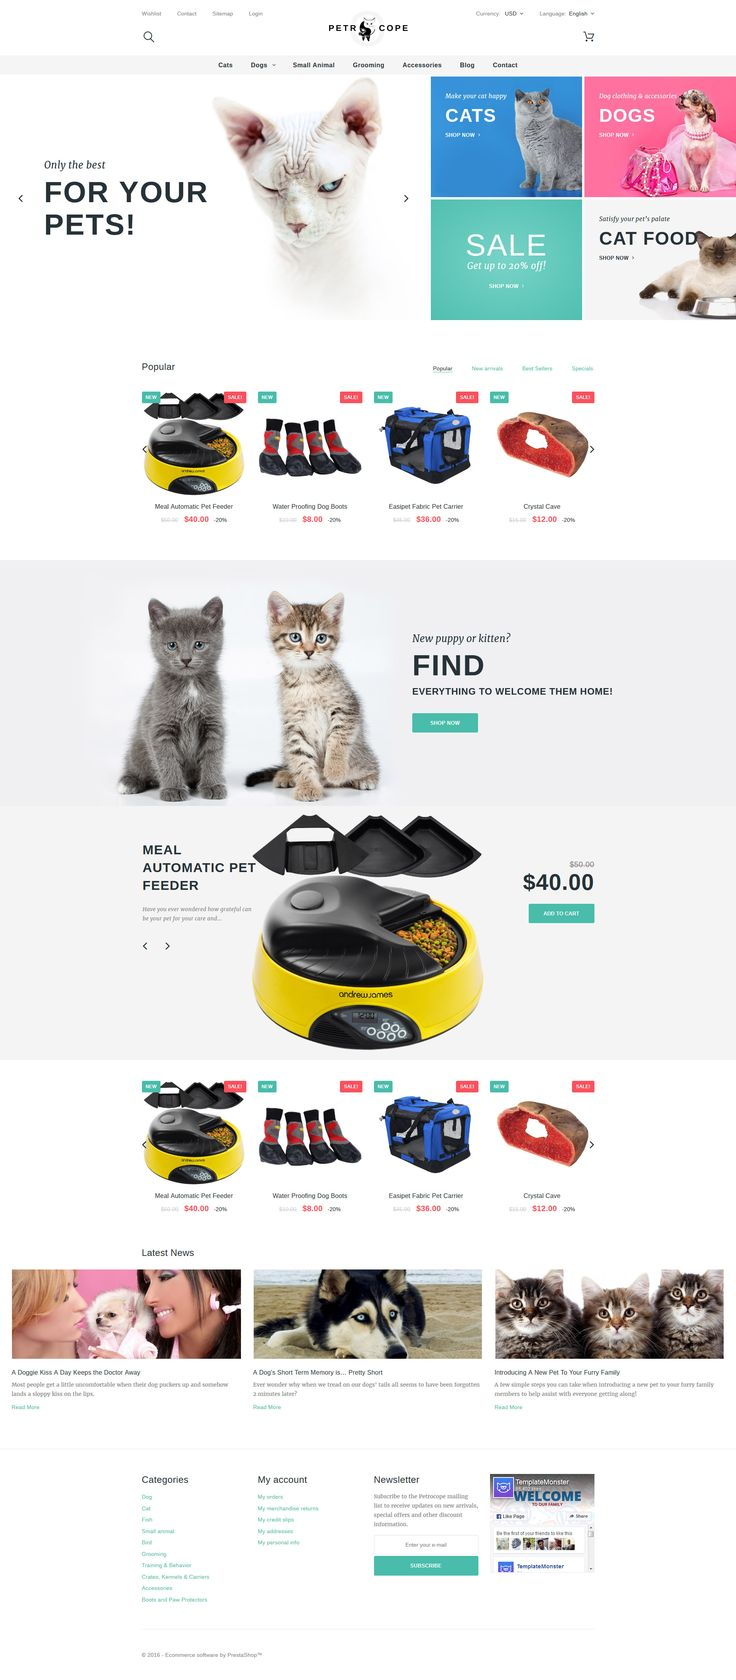 Petrocope - Pet Shop PrestaShop Theme http://www.templatemonster.com/prestashop-themes/petrocope-pet-shop-prestashop-theme-58981.html